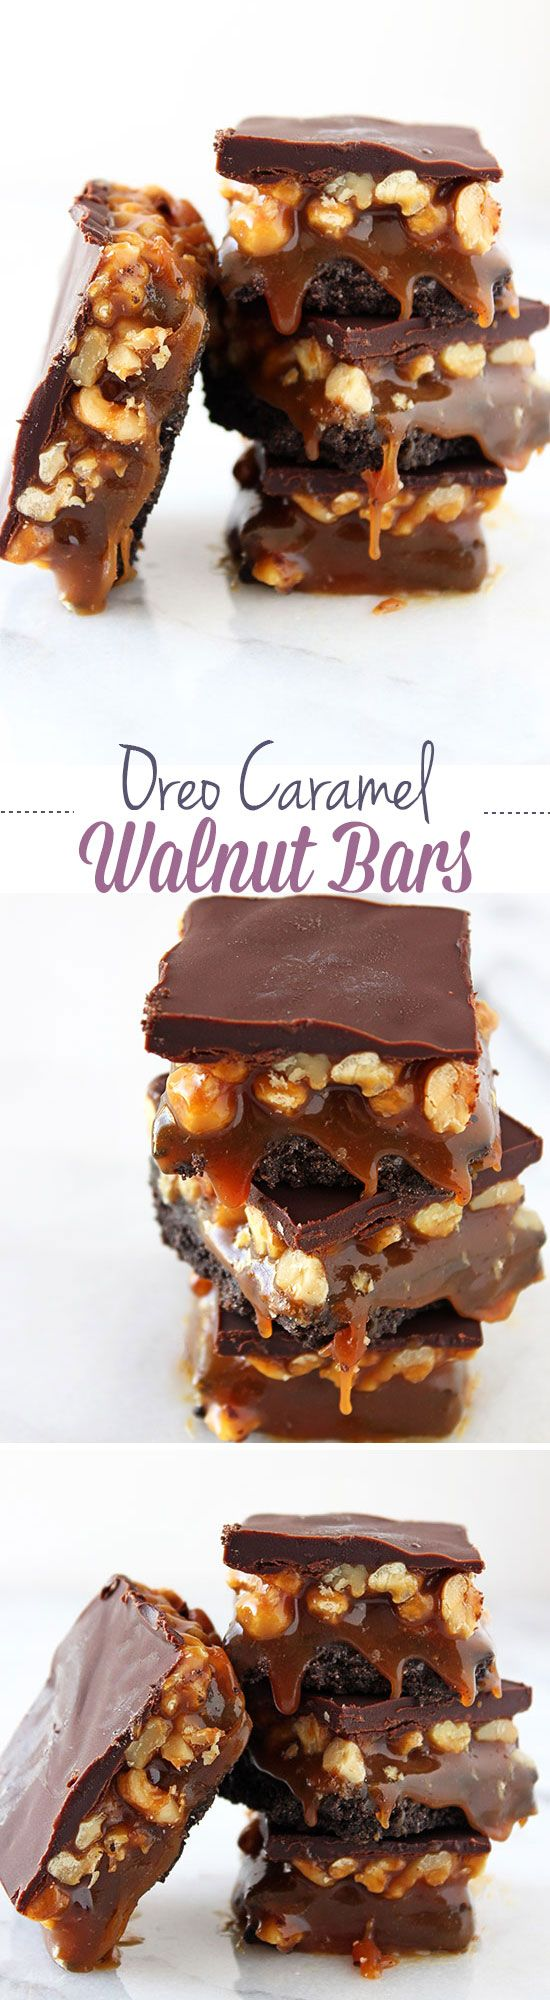 Oreo Caramel Walnut Bars are so rich and decadent with a layer of Oreo cookie crust, a layer of thick salted caramel and walnuts, all topped with chocolate.